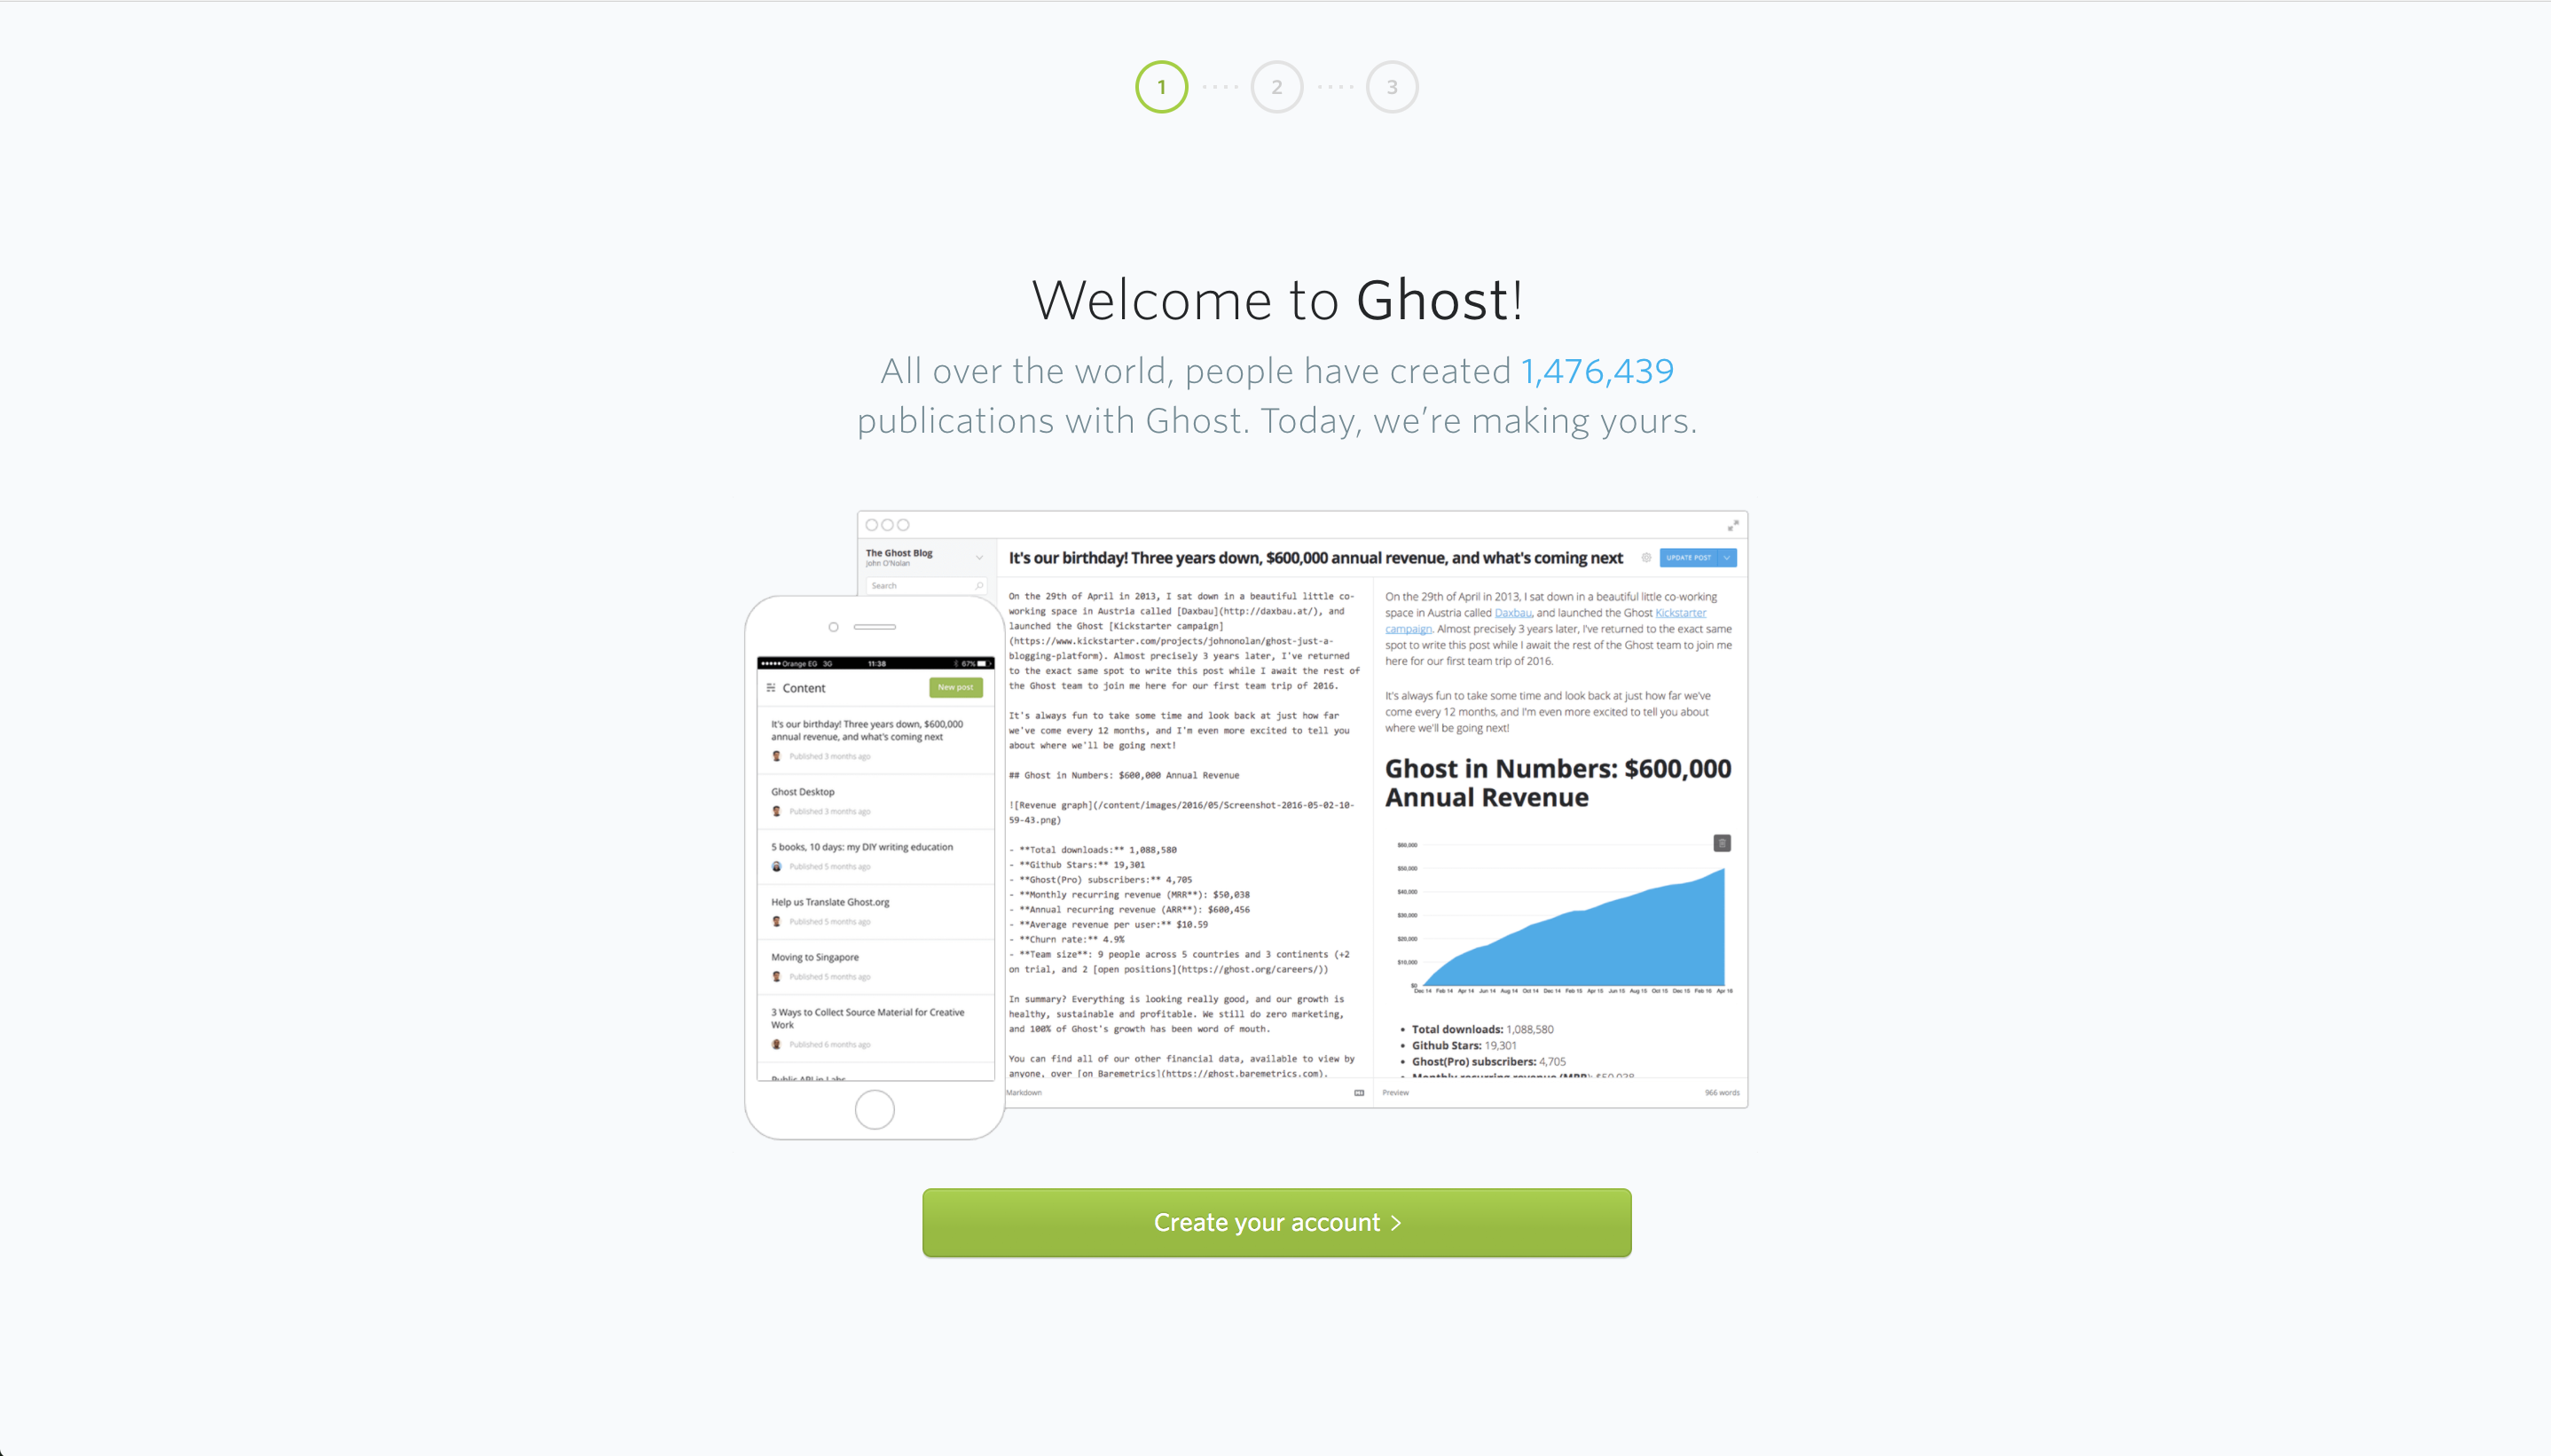 Creating Ghost subscription account.